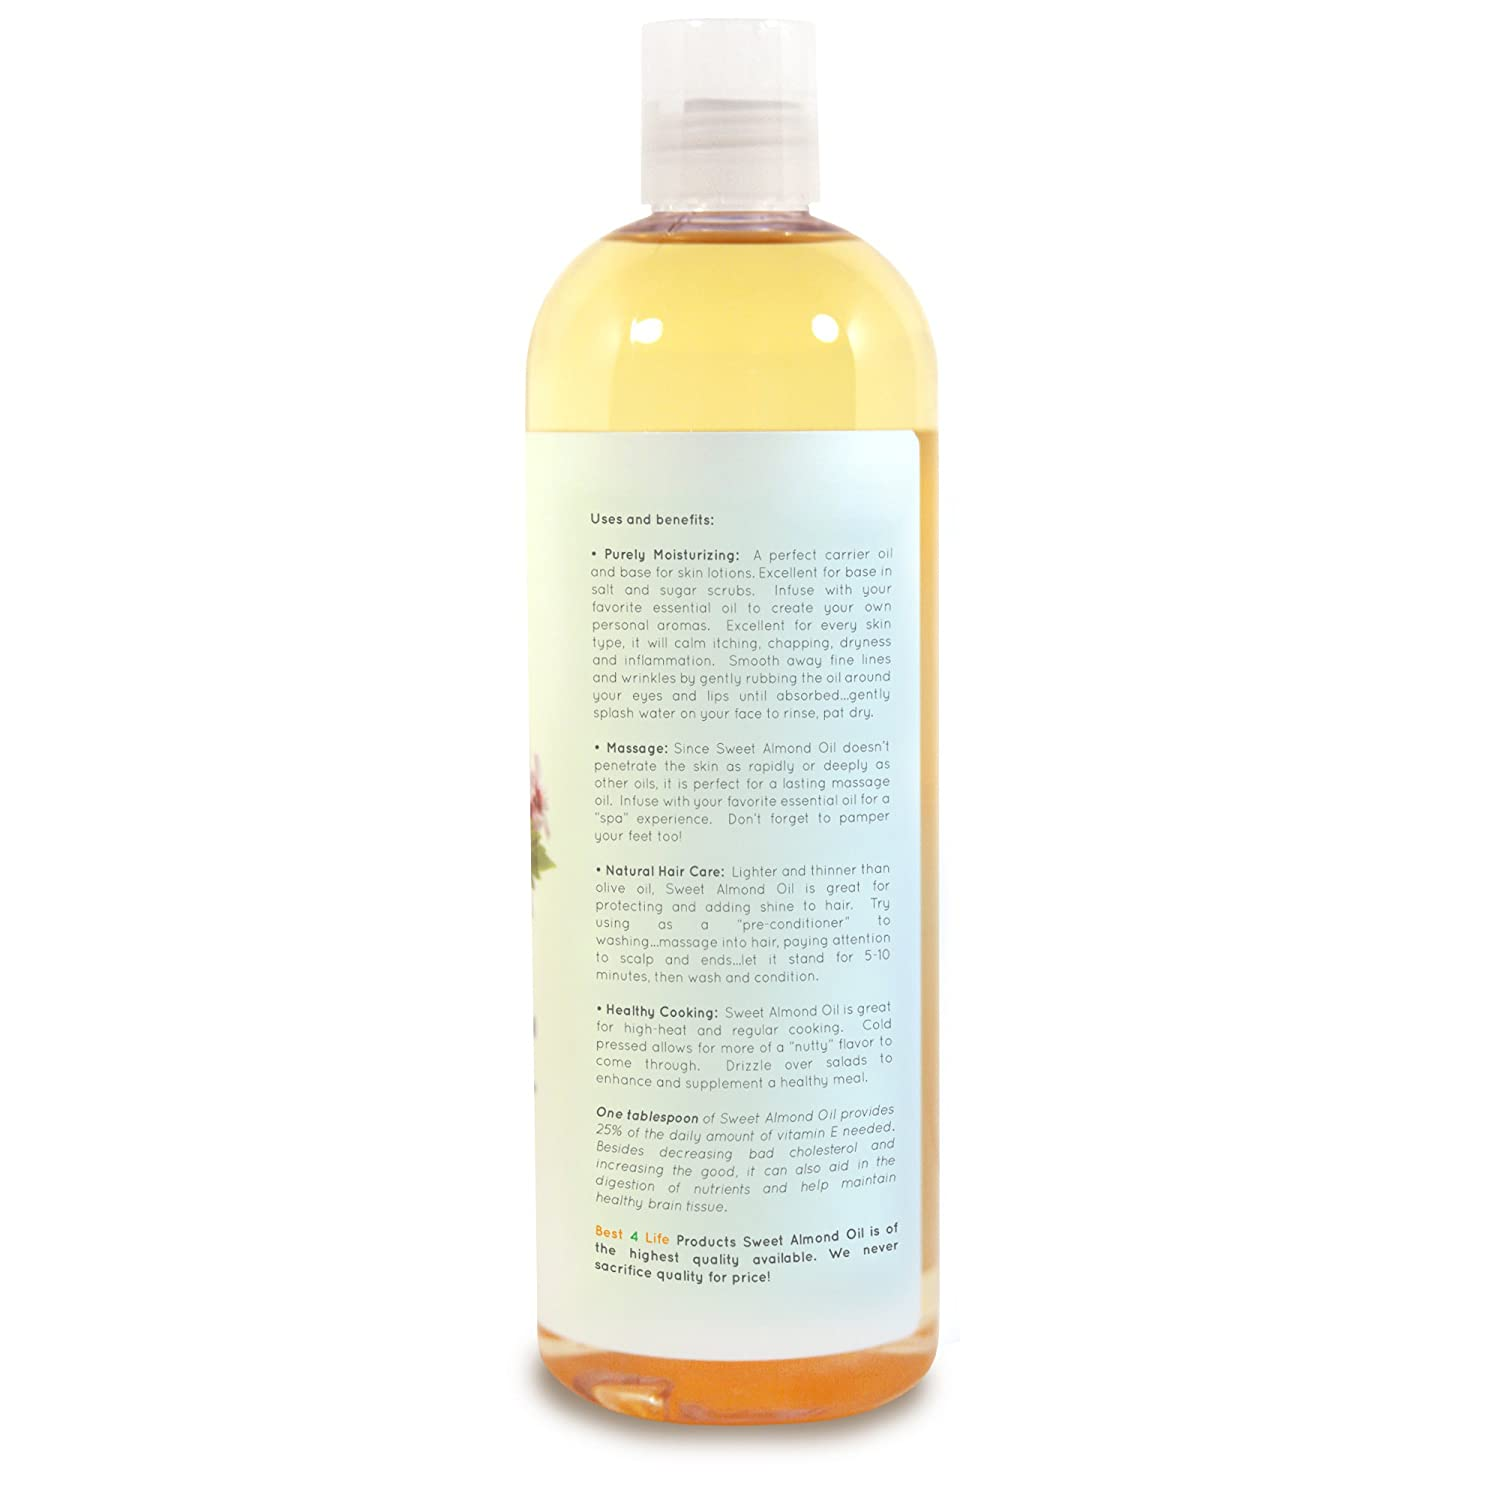 BEST 4 LIFE Products 100% Pure Sweet Almond Oil 16 oz - Natural Moisturizer  - Great for Skin,